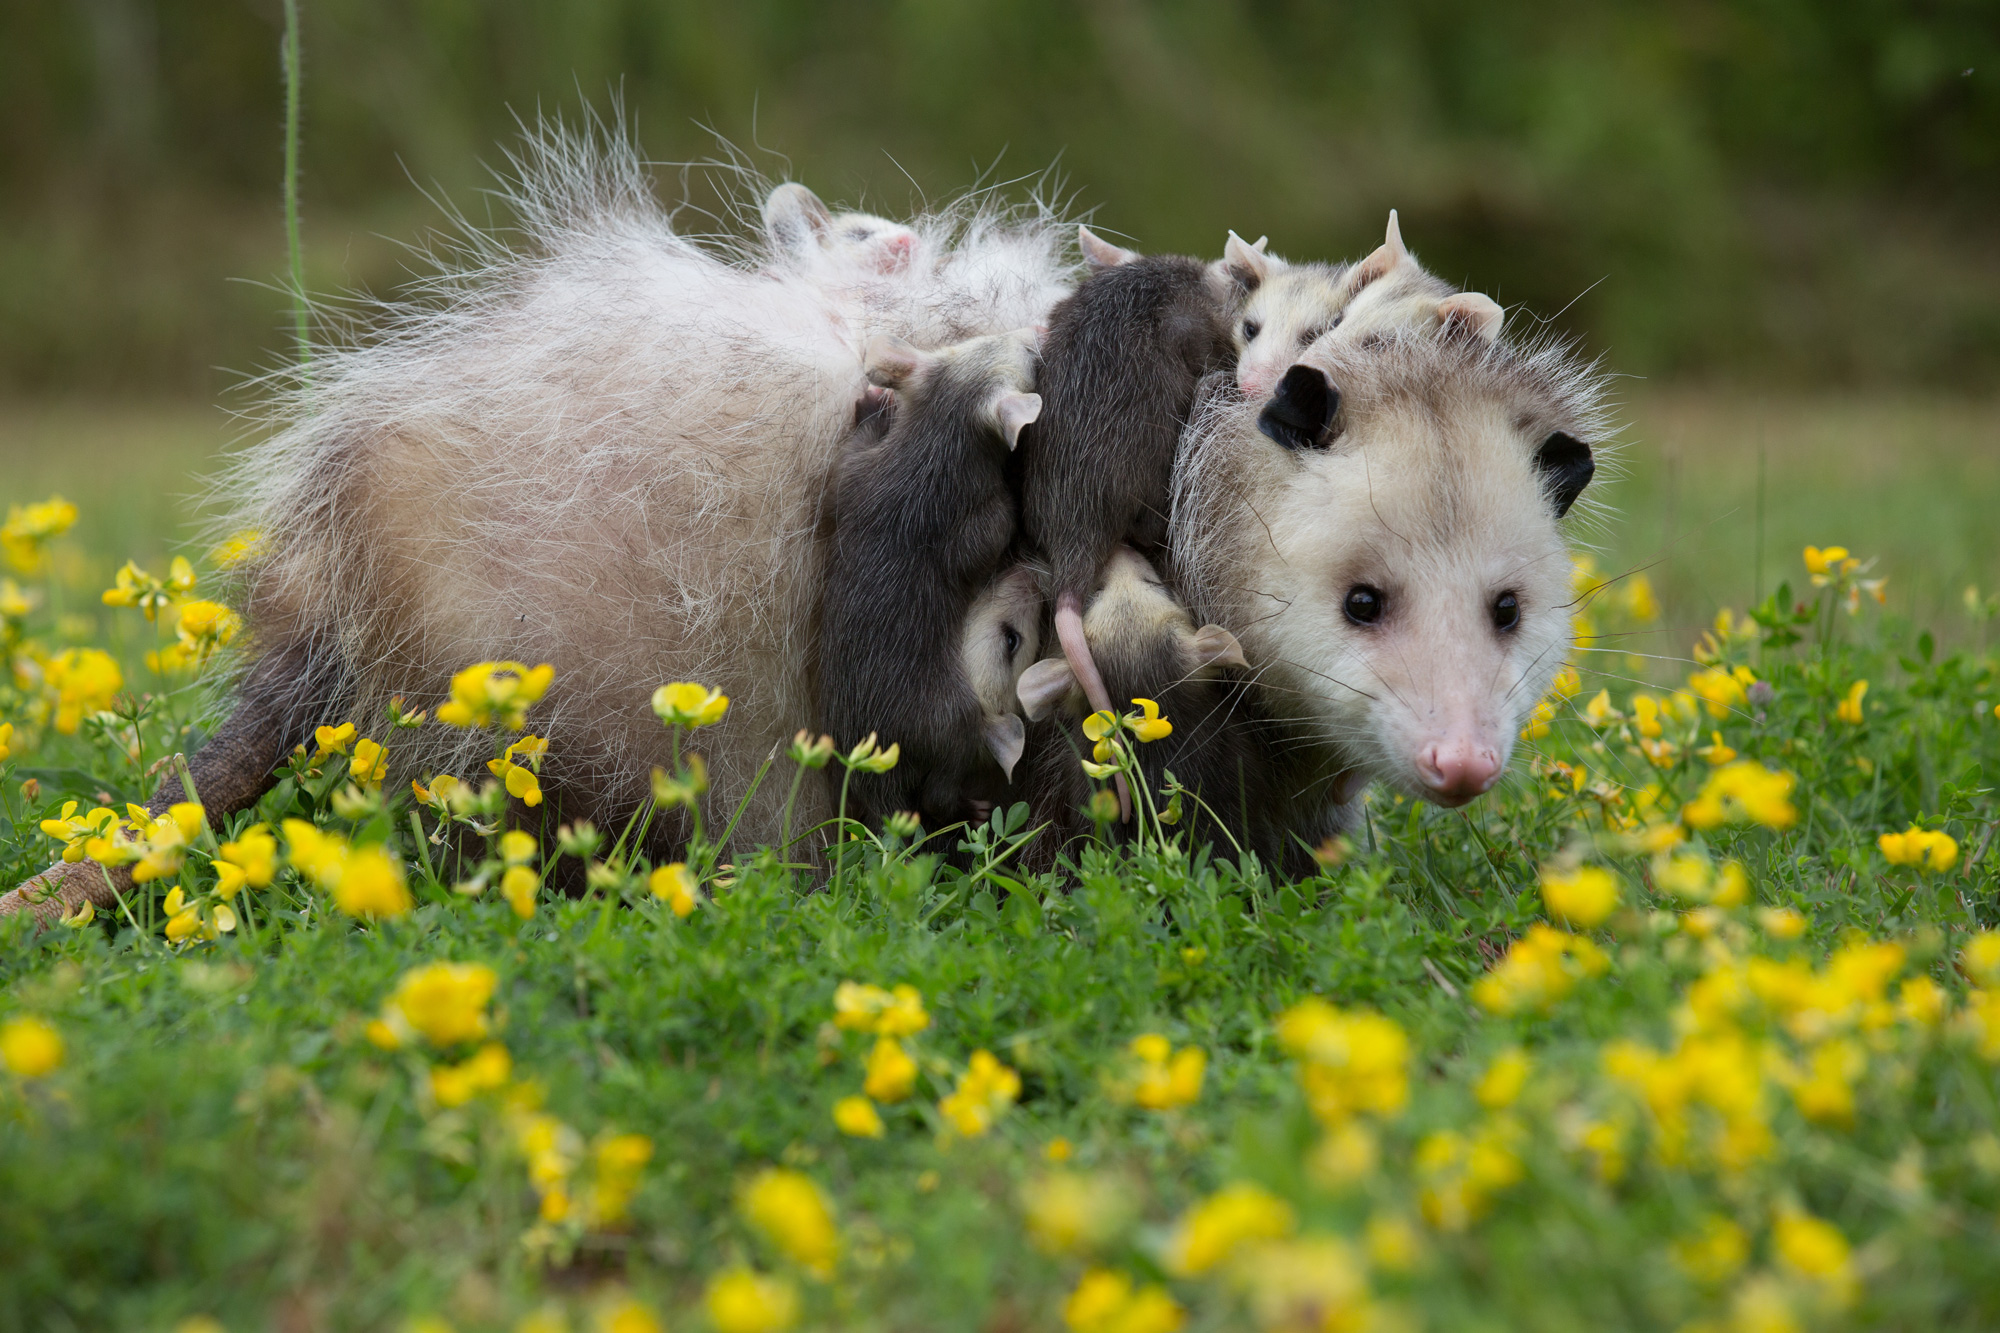 Virginia Opossum - (Didelphis virginiana) are the only marsupials found in the Everglades